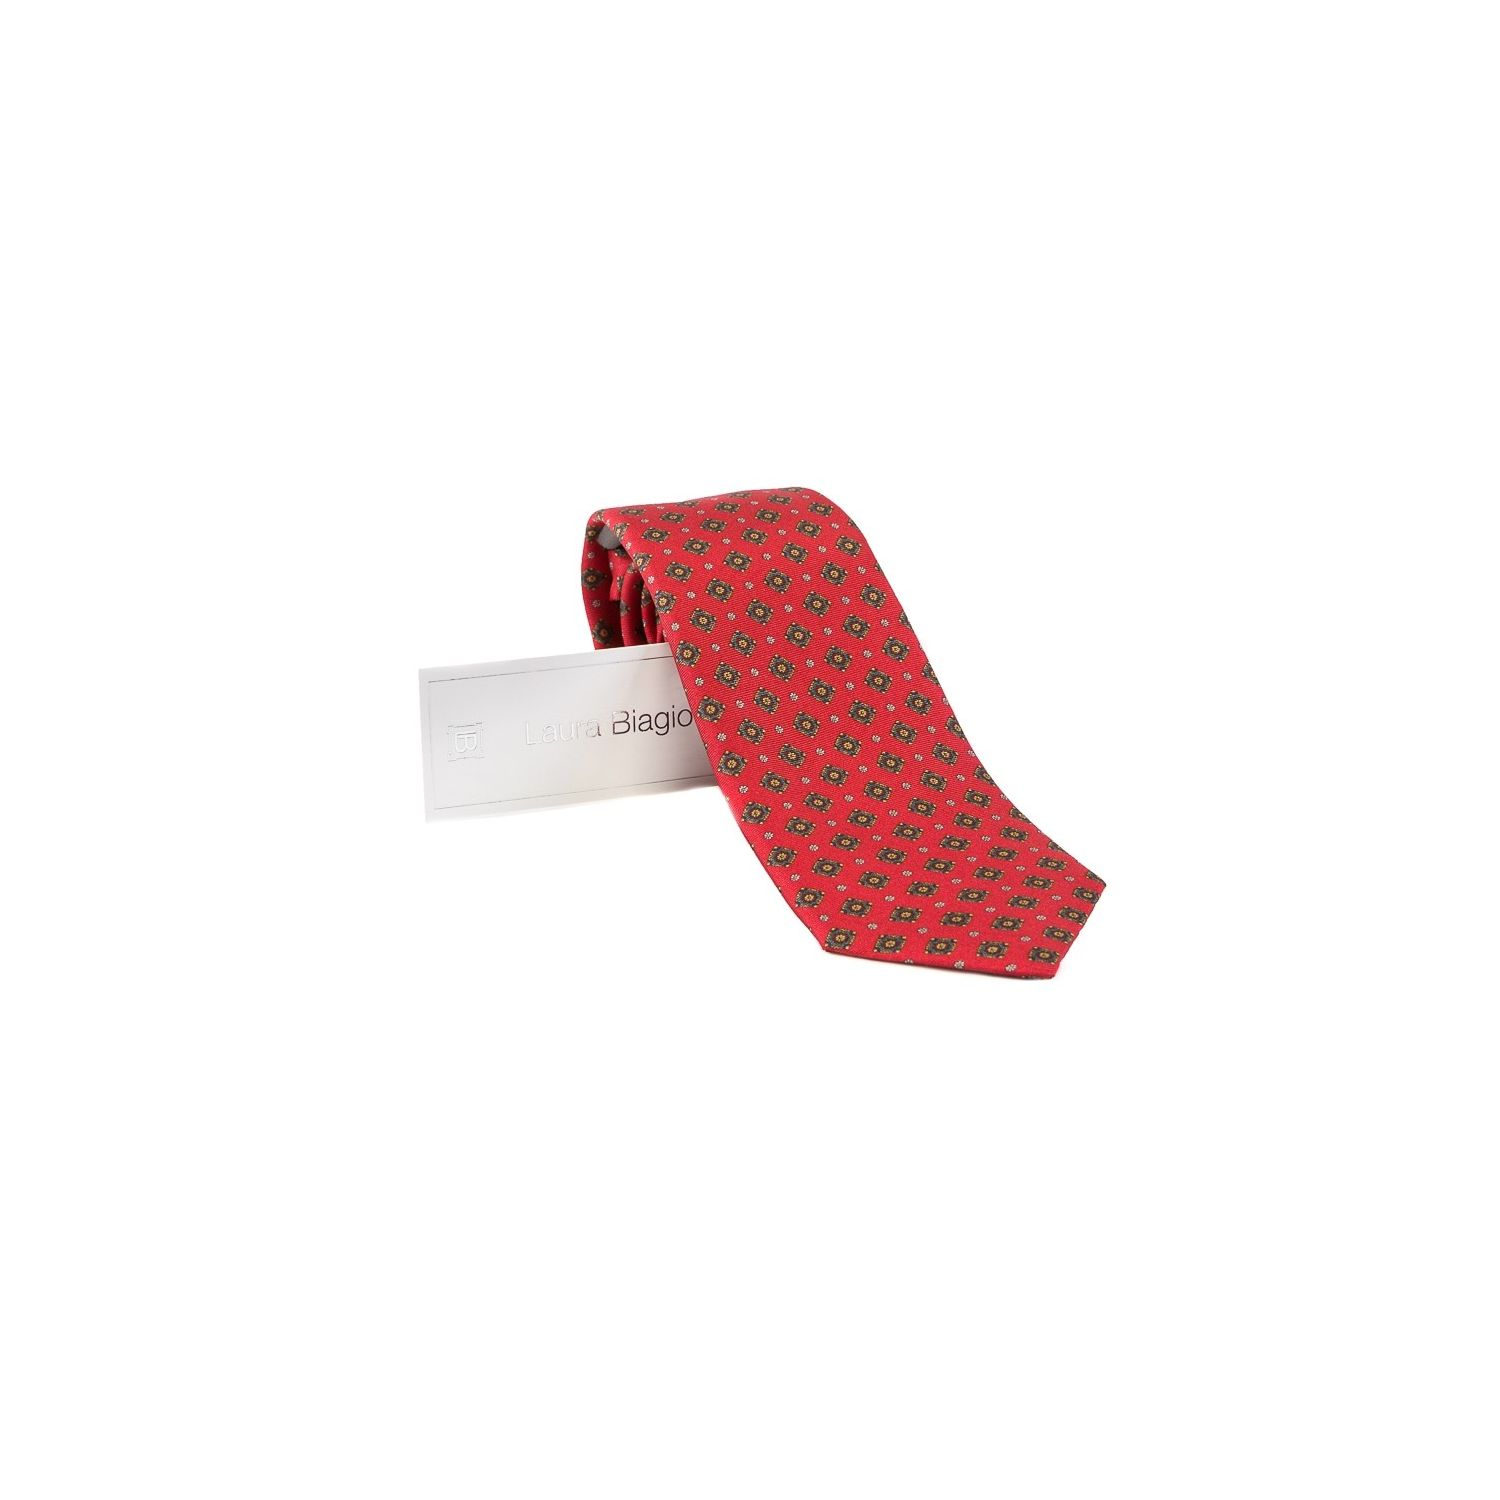 Laura Biagiotti tie out of office red